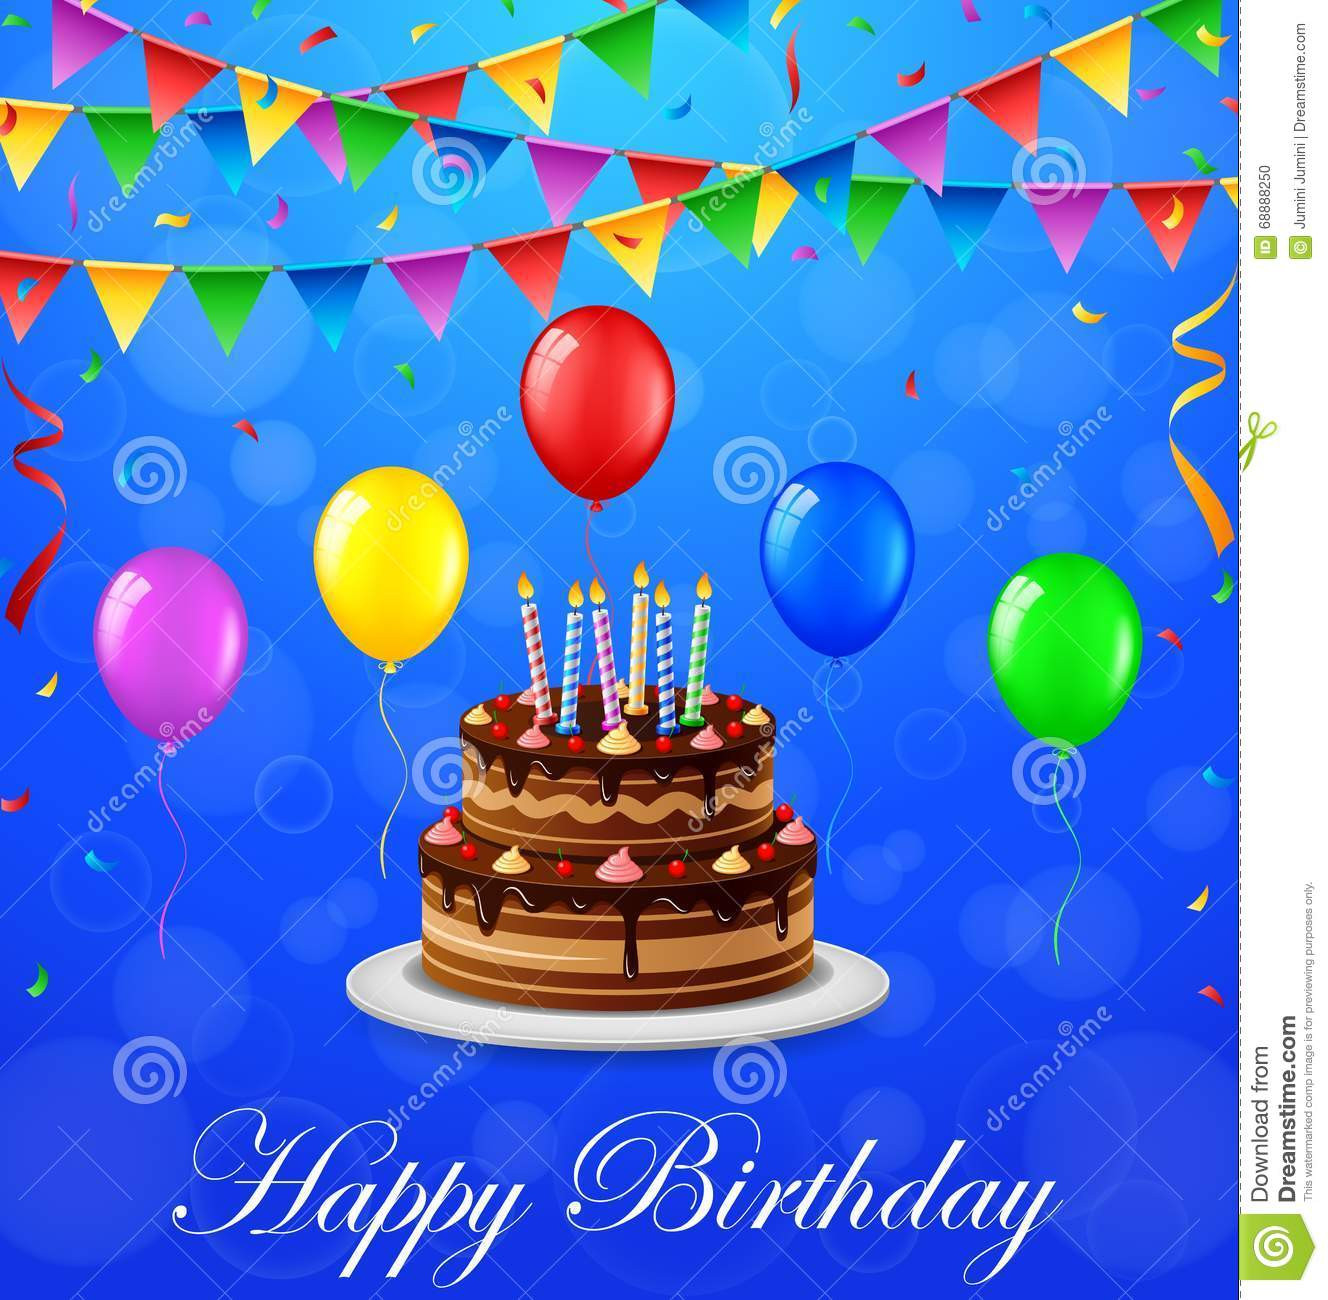 Happy Birthday Cake And Balloons  Happy Birthday Background With Cake And Balloons Stock